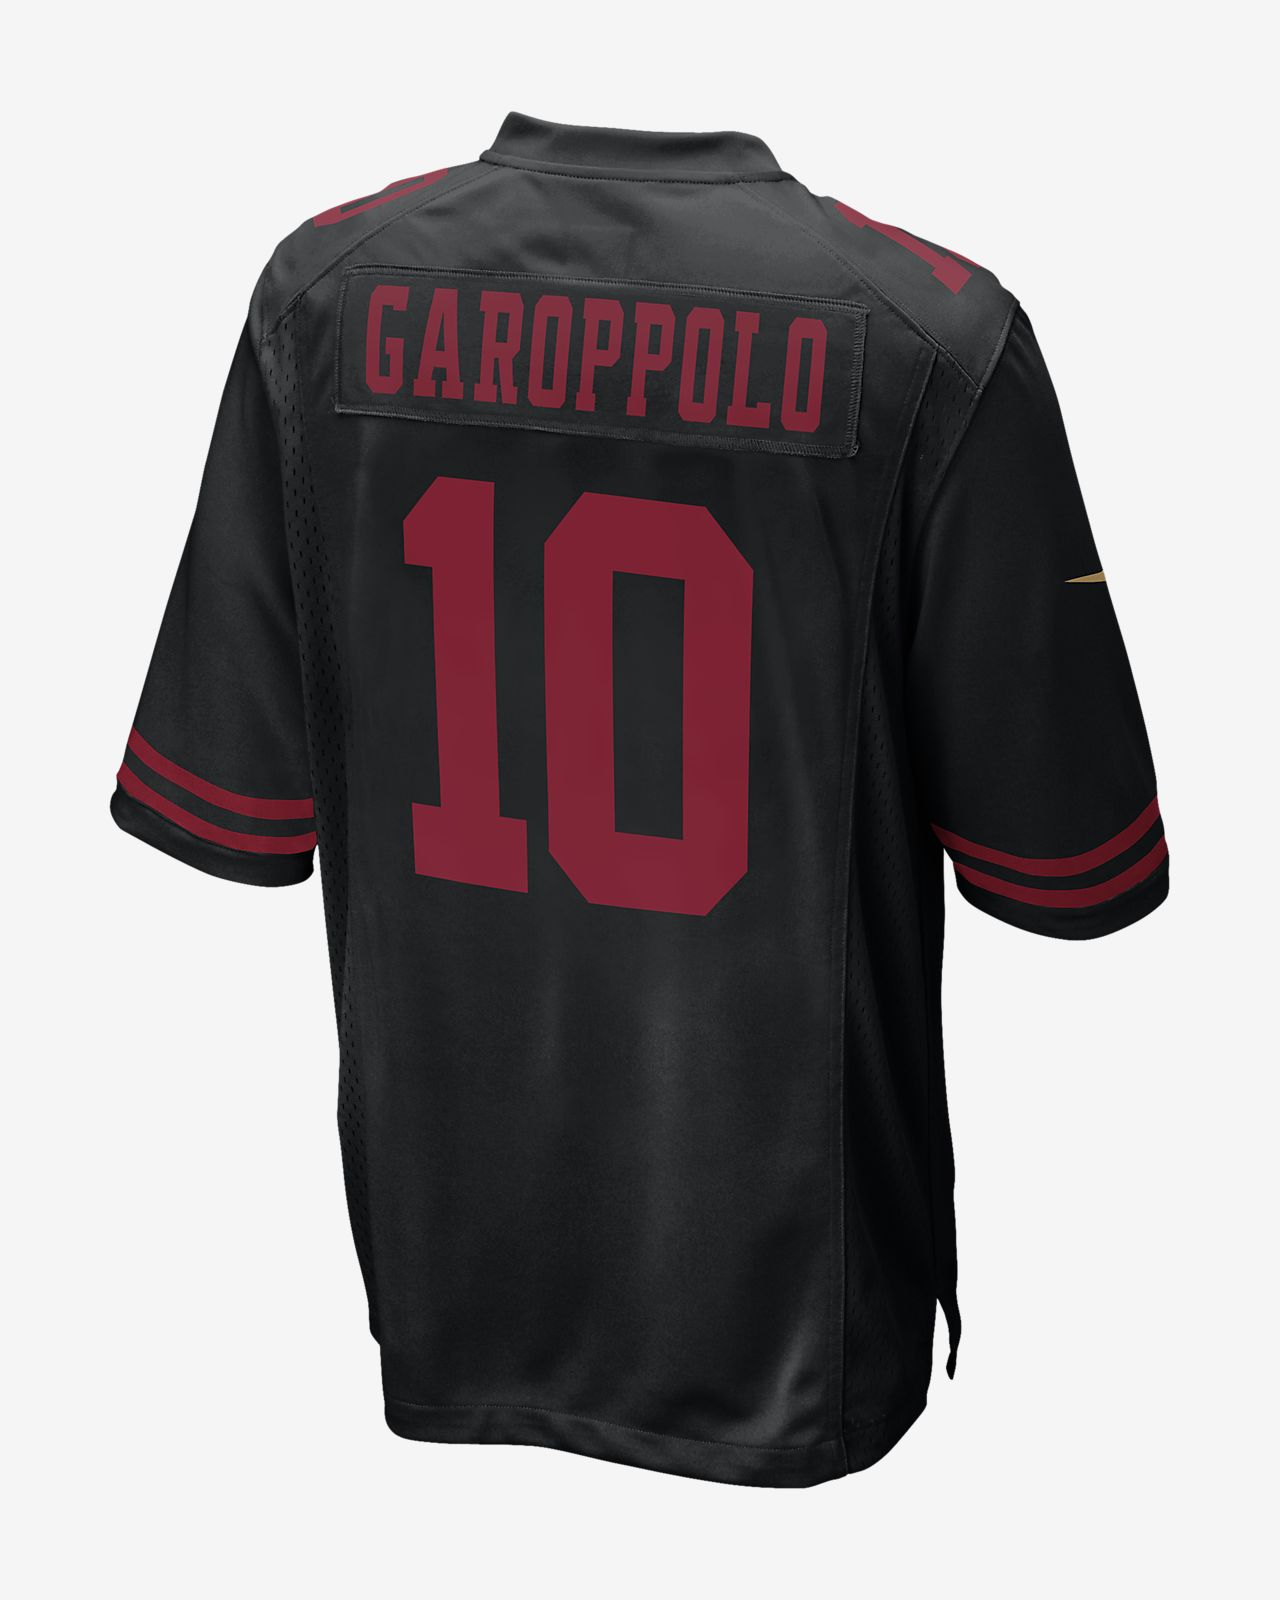 premium selection 779d4 4a8ae NFL San Francisco 49ers Game Jersey (Jimmy Garoppolo) Men's Football Jersey